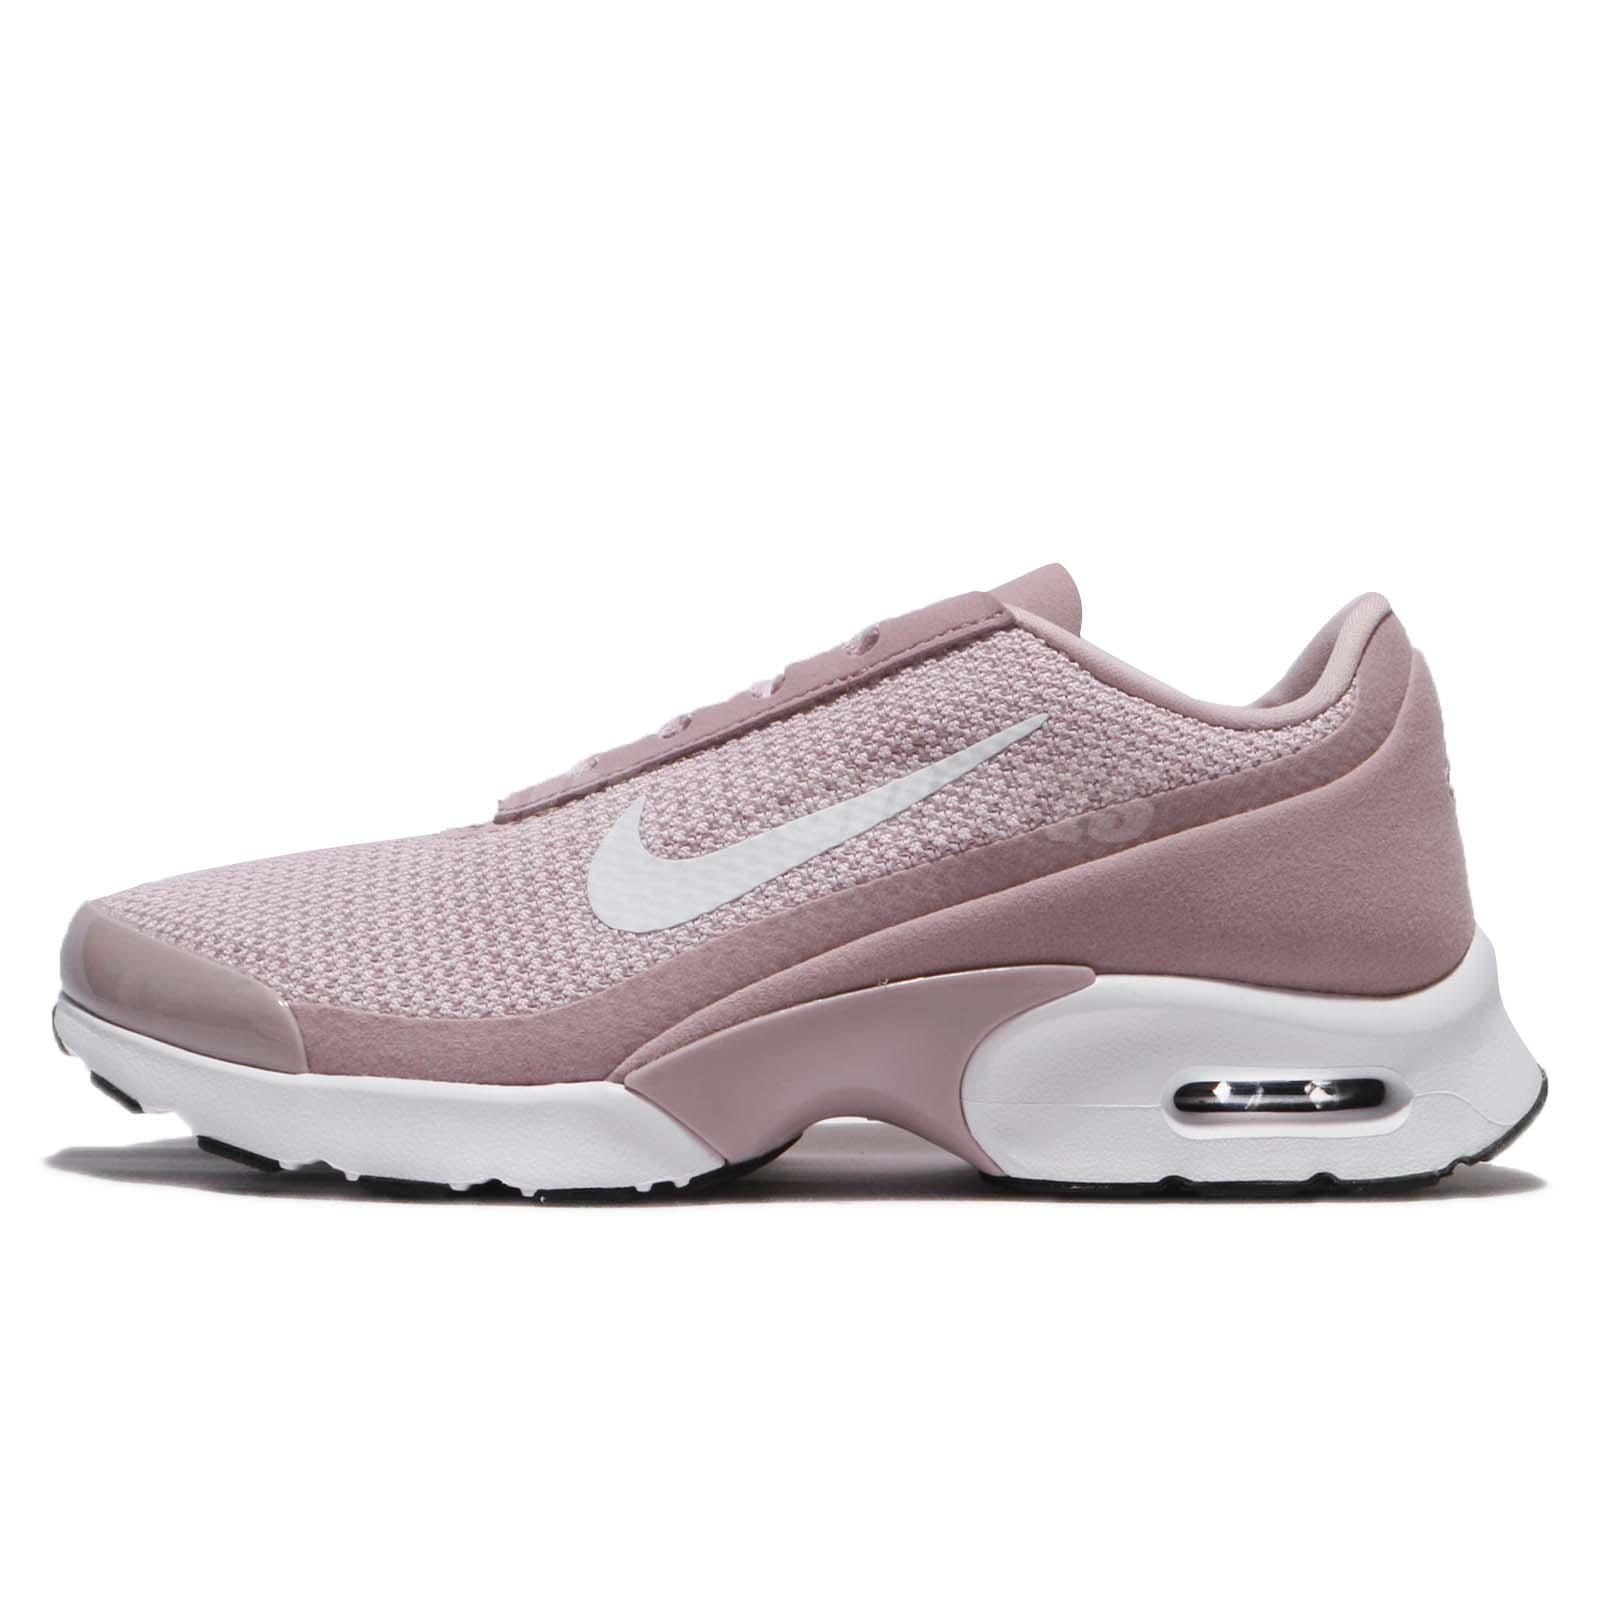 detailed look 126d3 0022c Wmns Nike Air Max Jewell Particle Rose White Women Running Shoes NSW 896194- 602